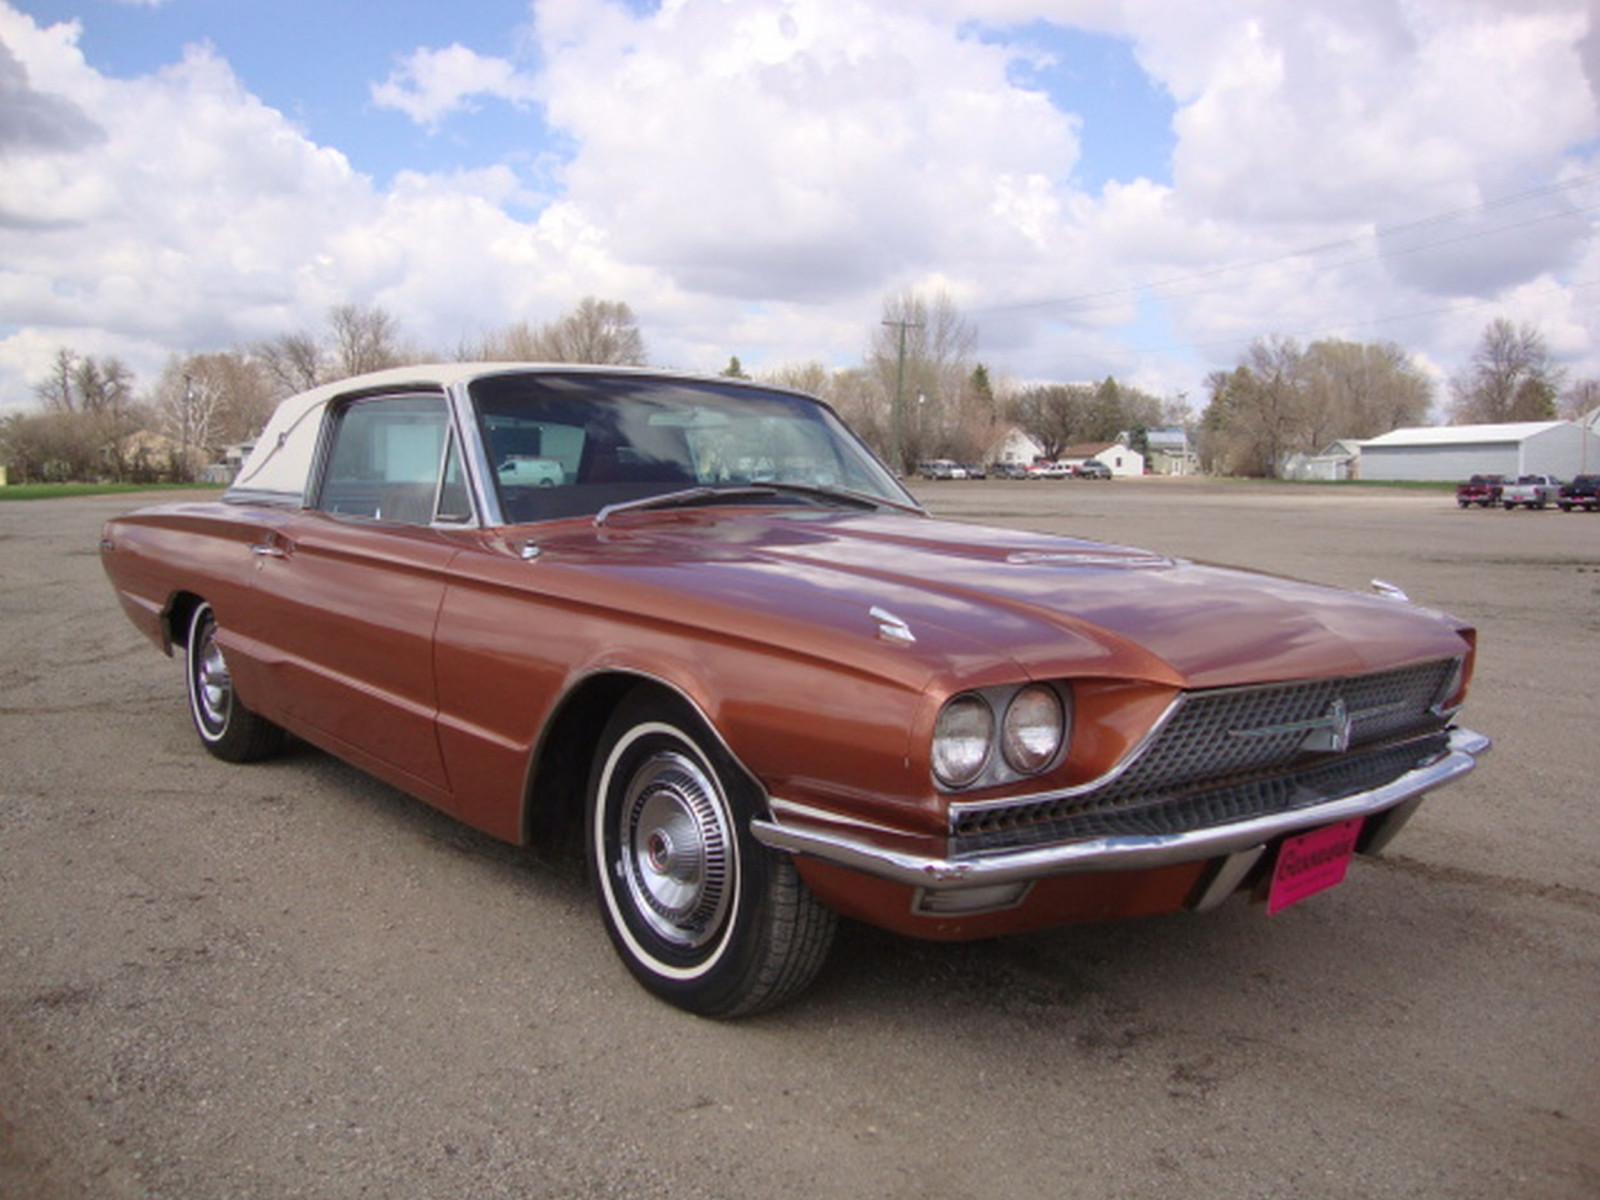 1966 Ford Thunderbird Coupe - Image 3